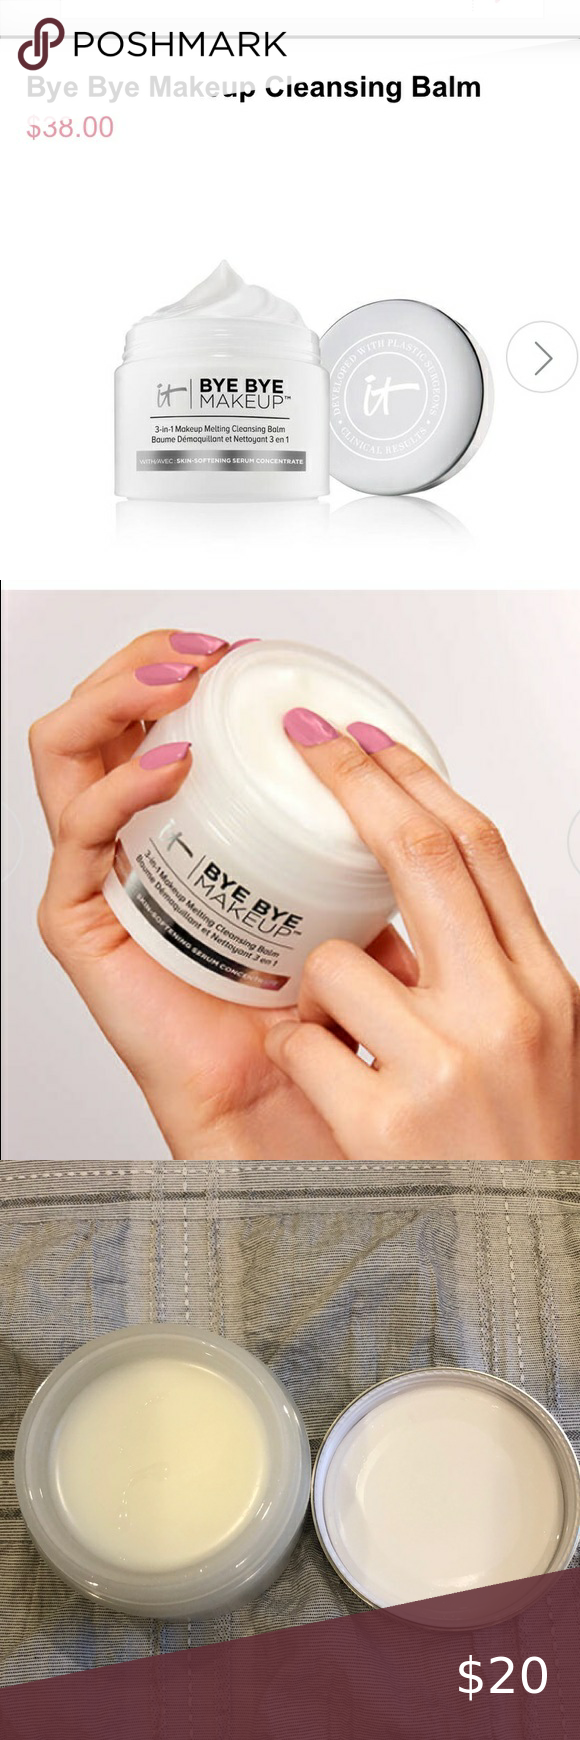 It cosmetics 3in1 melting cleansing balm in 2020 The